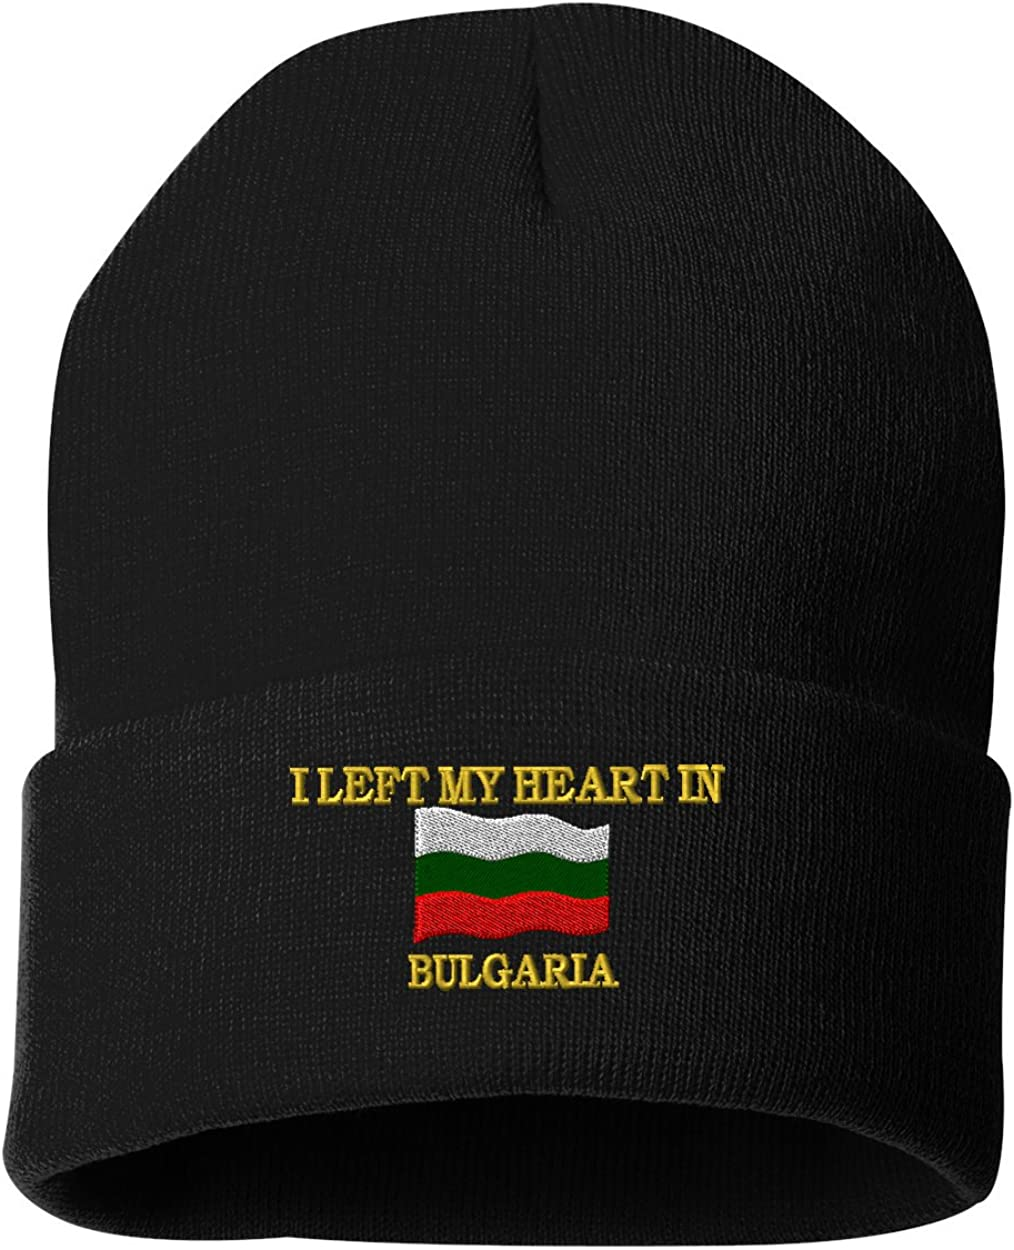 I LEFT MY HEART IN BULGARIA Custom Personalized Embroidery Embroidered Beanie